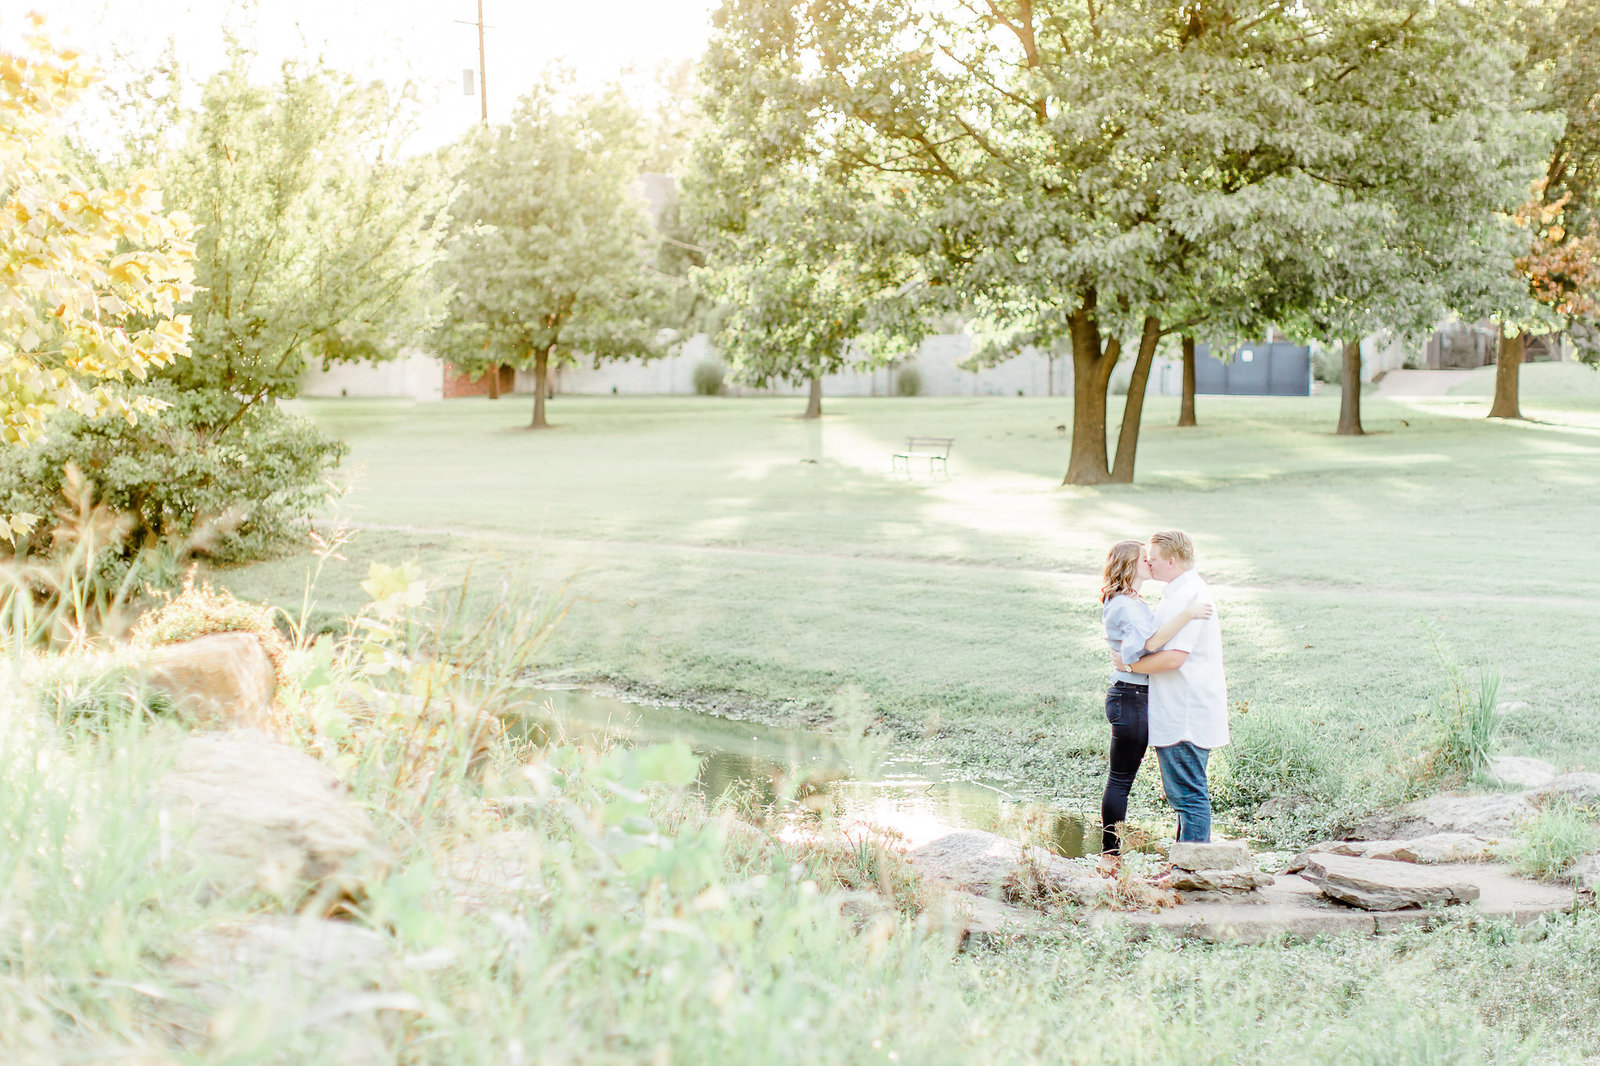 Woodward-Park-Tulsa-Oklahoma-Engagement-Photographer-Holly-Felts-Photography-Photos-44